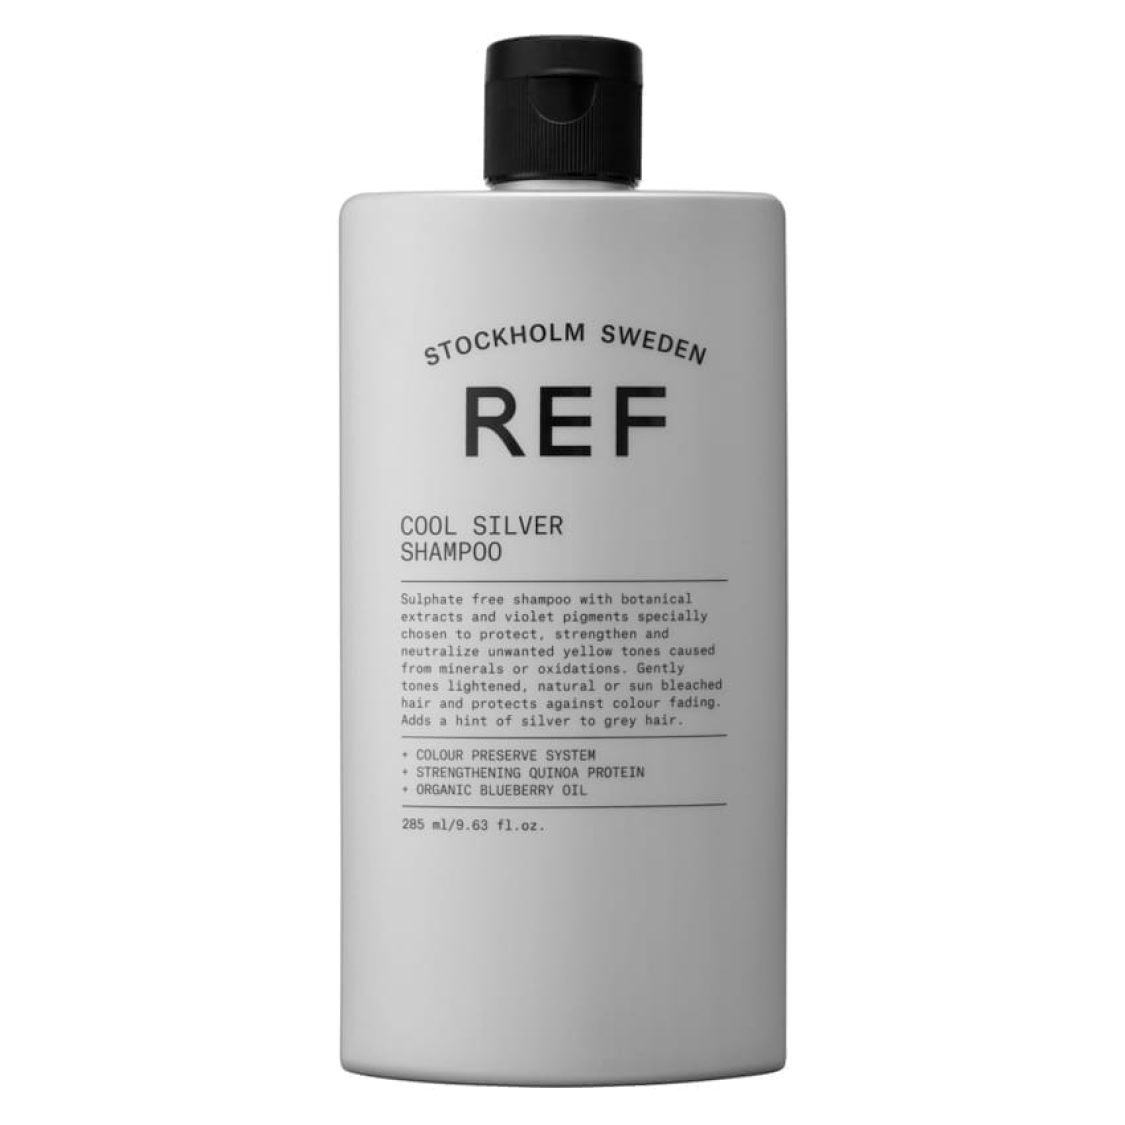 REF - Cool Silver Shampoo 285 ml